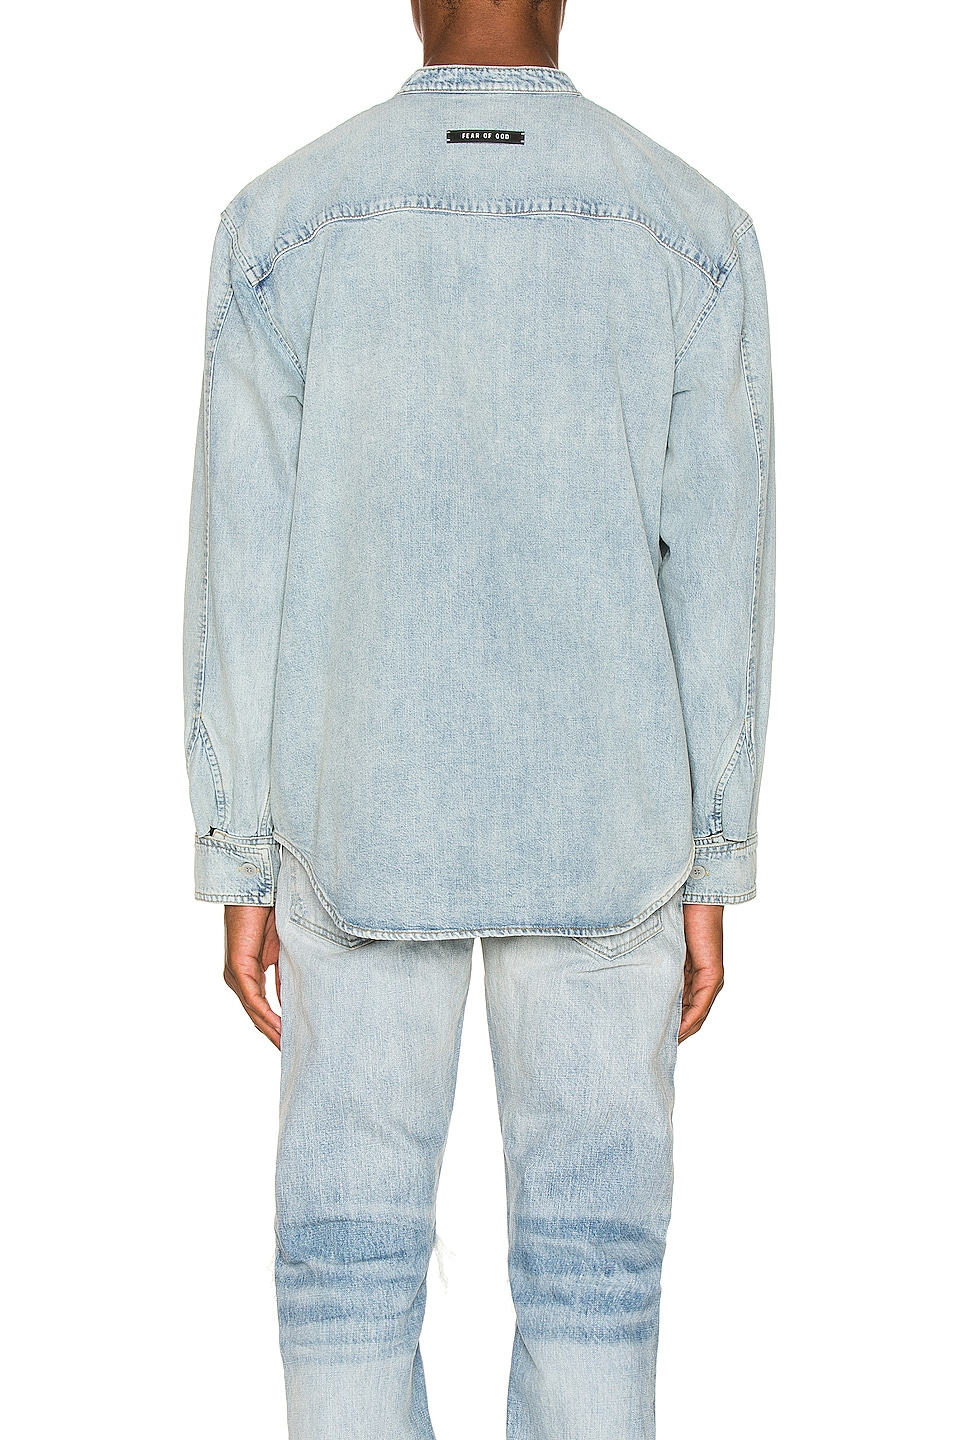 Image 3 of Fear of God Vintage Denim Shirt in Vintage Indigo